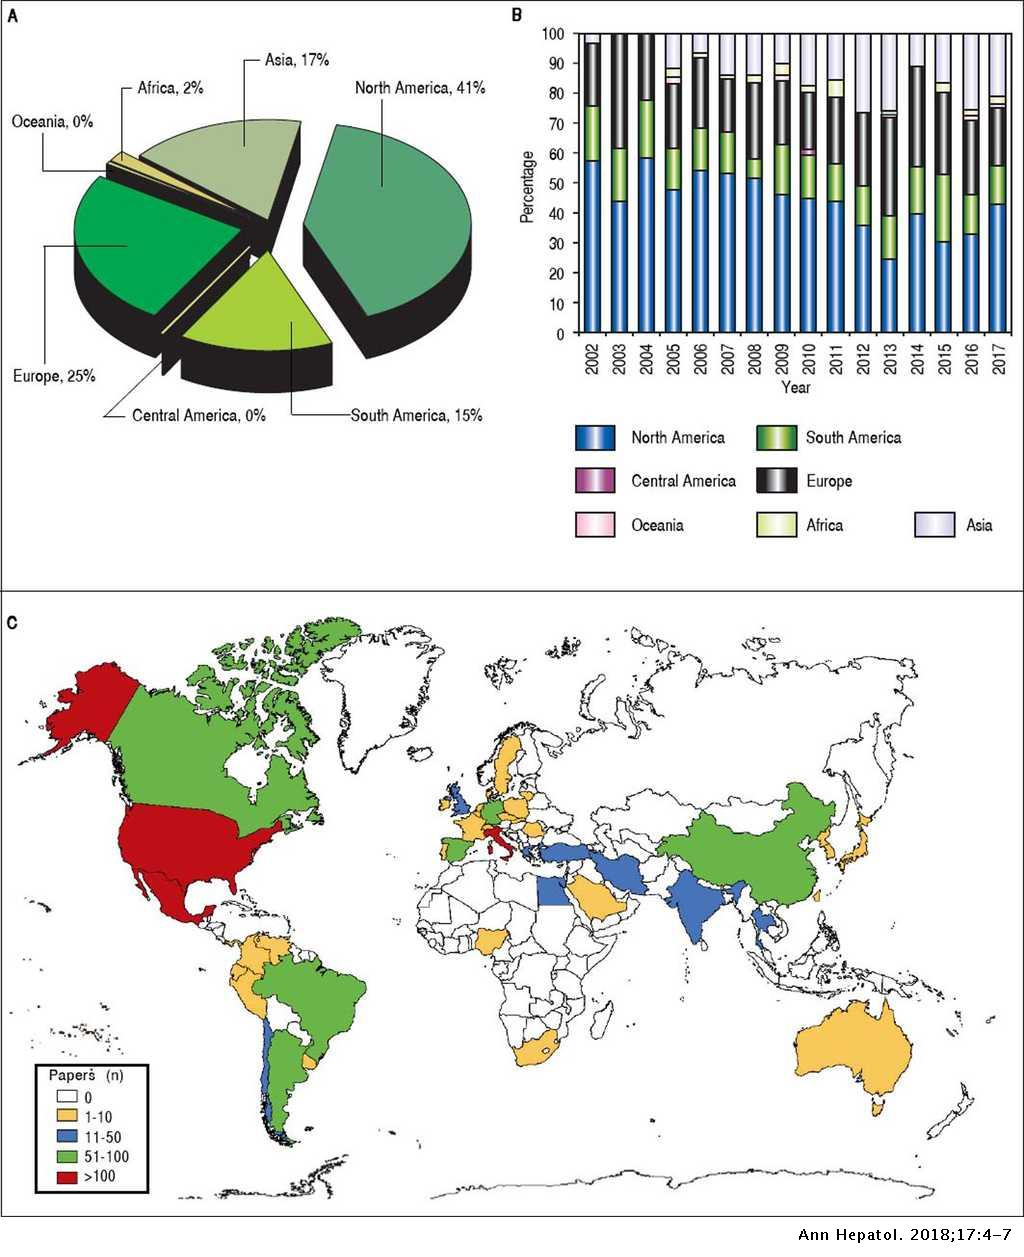 Annals of Hepatology: Viewpoints from Afar | Annals of